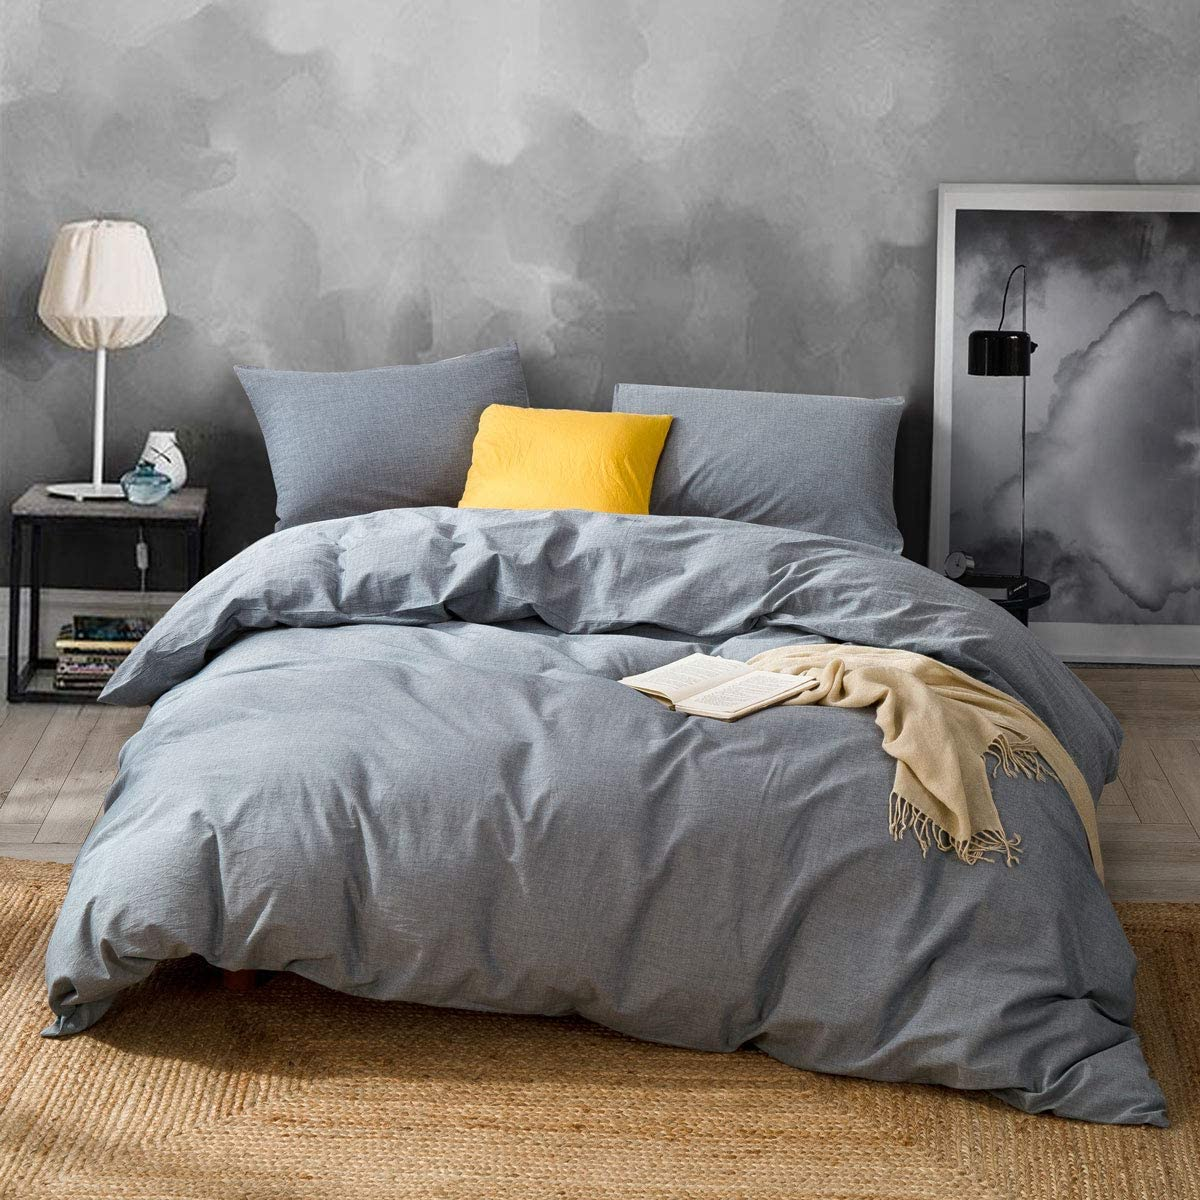 ATsense Duvet Cover King, 100% Washed Cotton, Bedding Duvet Cover Set, 3-Piece, Ultra Soft and Easy Care, Simple Style Bedding Set (Grey 7004-7)